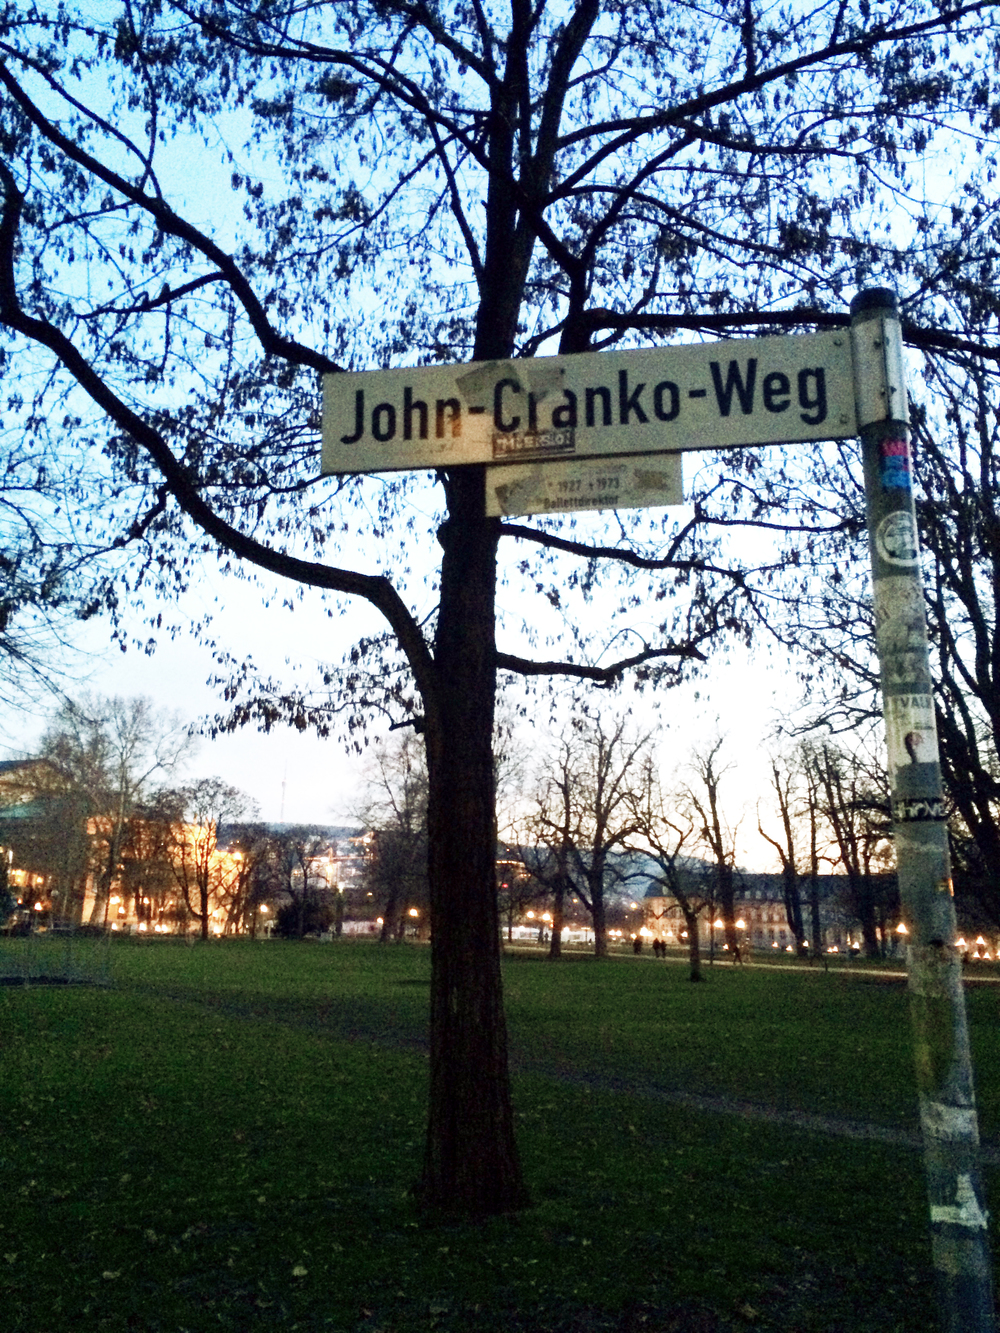 As I was leaving, I noticed the name of the street by the Opera House — John Cranko Way! It felt so perfect to be strolling down his street after just watching his ballet on its 50th anniversary. A great ending to the night!